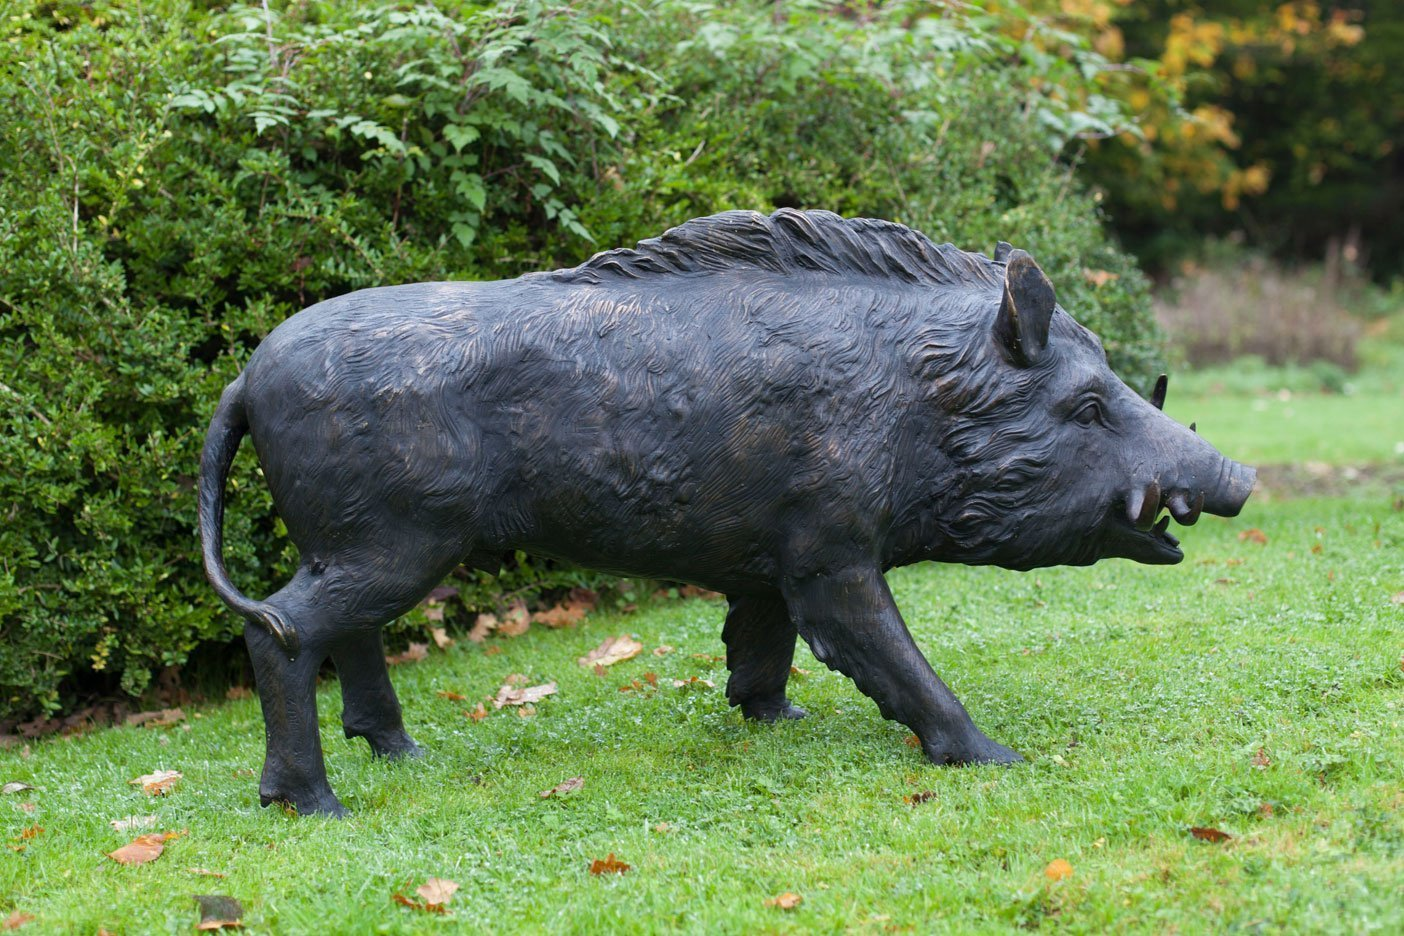 Bronze Boar Garden Statue  Life-size wild boar garden ornament cast in  bronze  View now